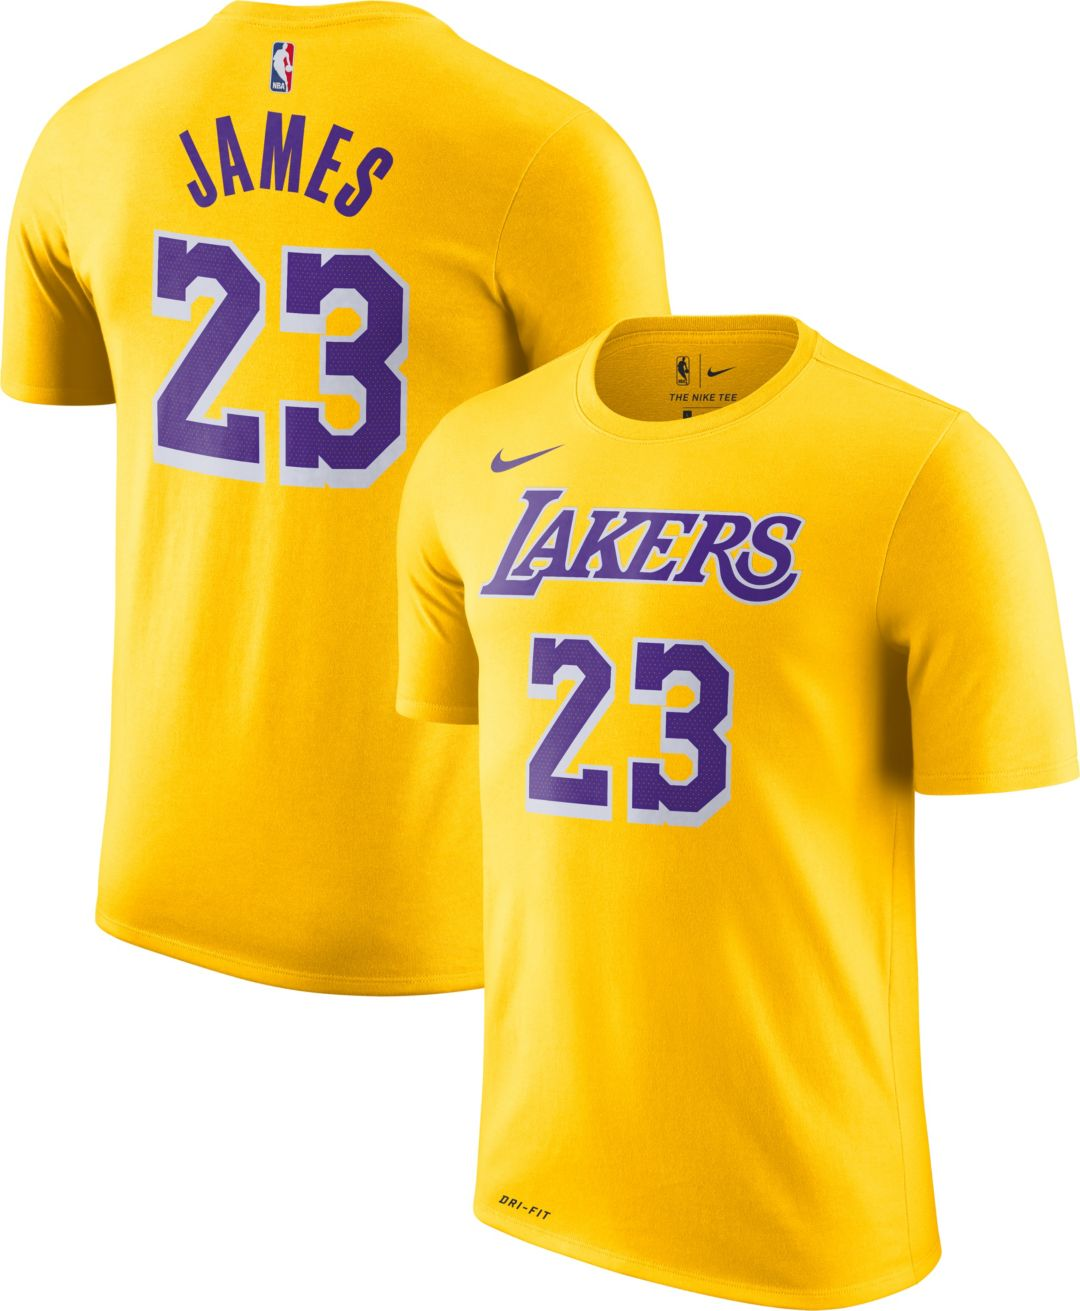 d729b54689d Nike Men's Los Angeles Lakers LeBron James Dri-FIT Gold T-Shirt ...